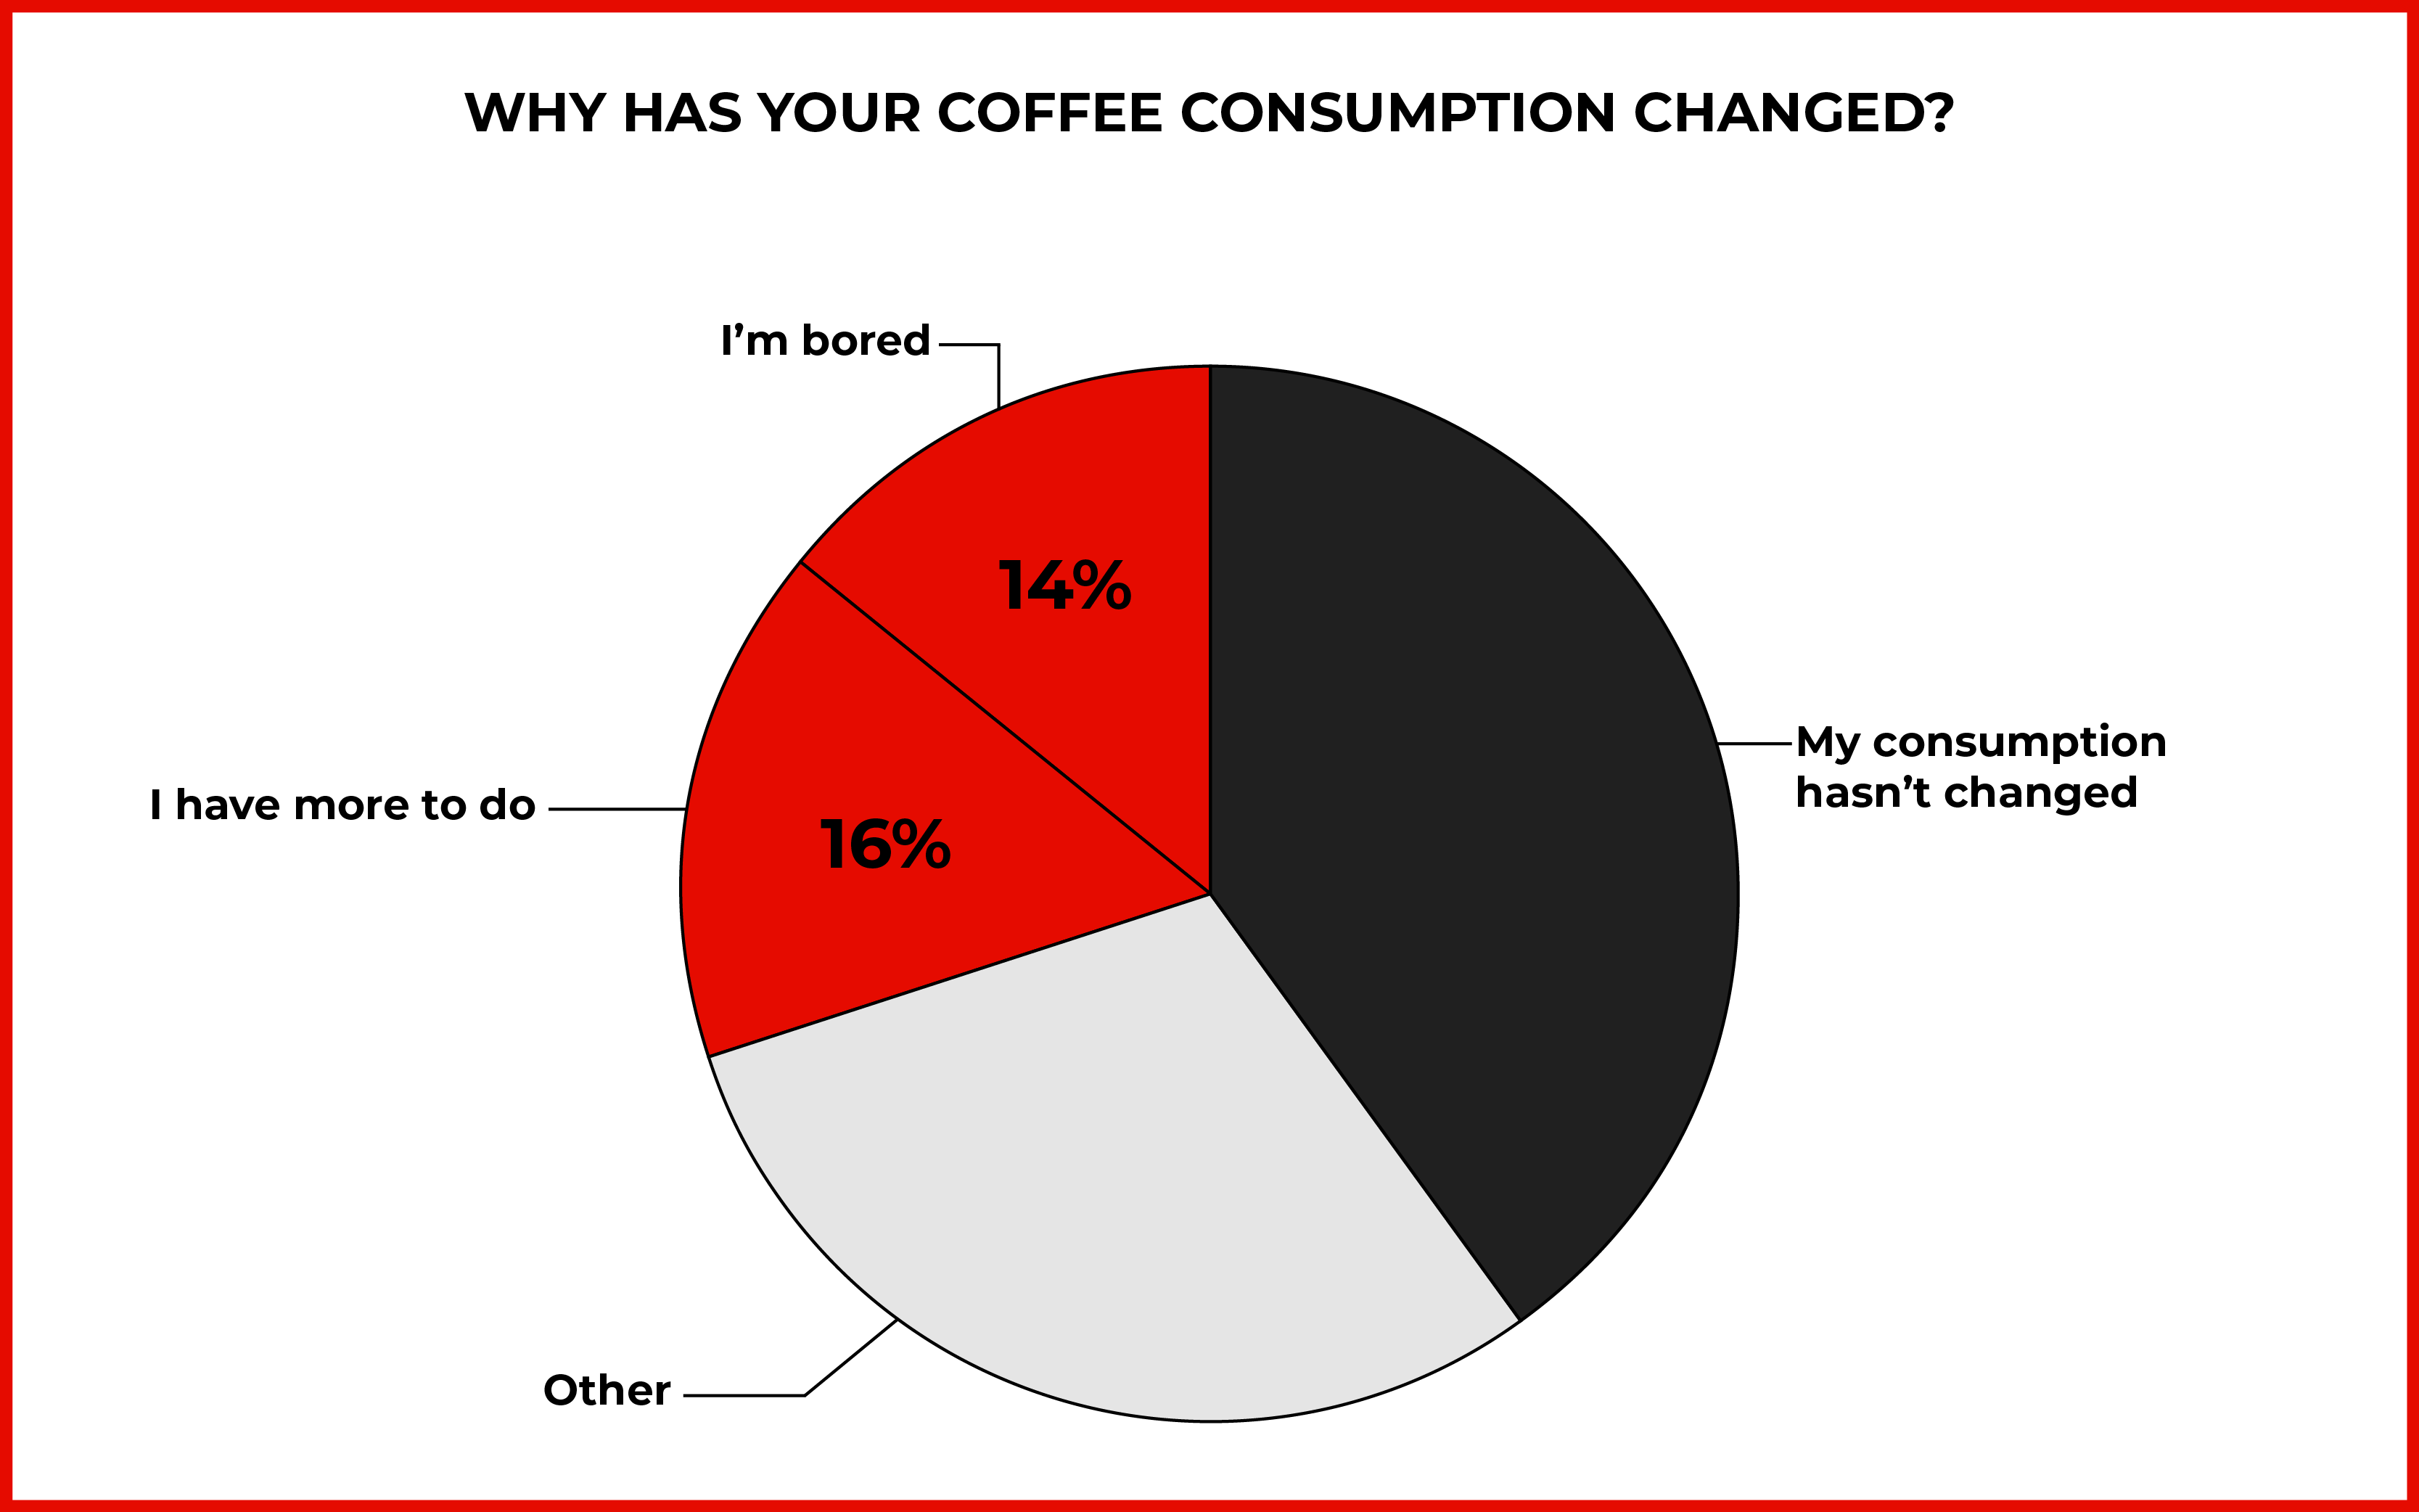 "Pie chart dividing reasons for change in coffee consumption, with 16% of people who said they ""have more to do"" and another 14% who said they are ""bored"""